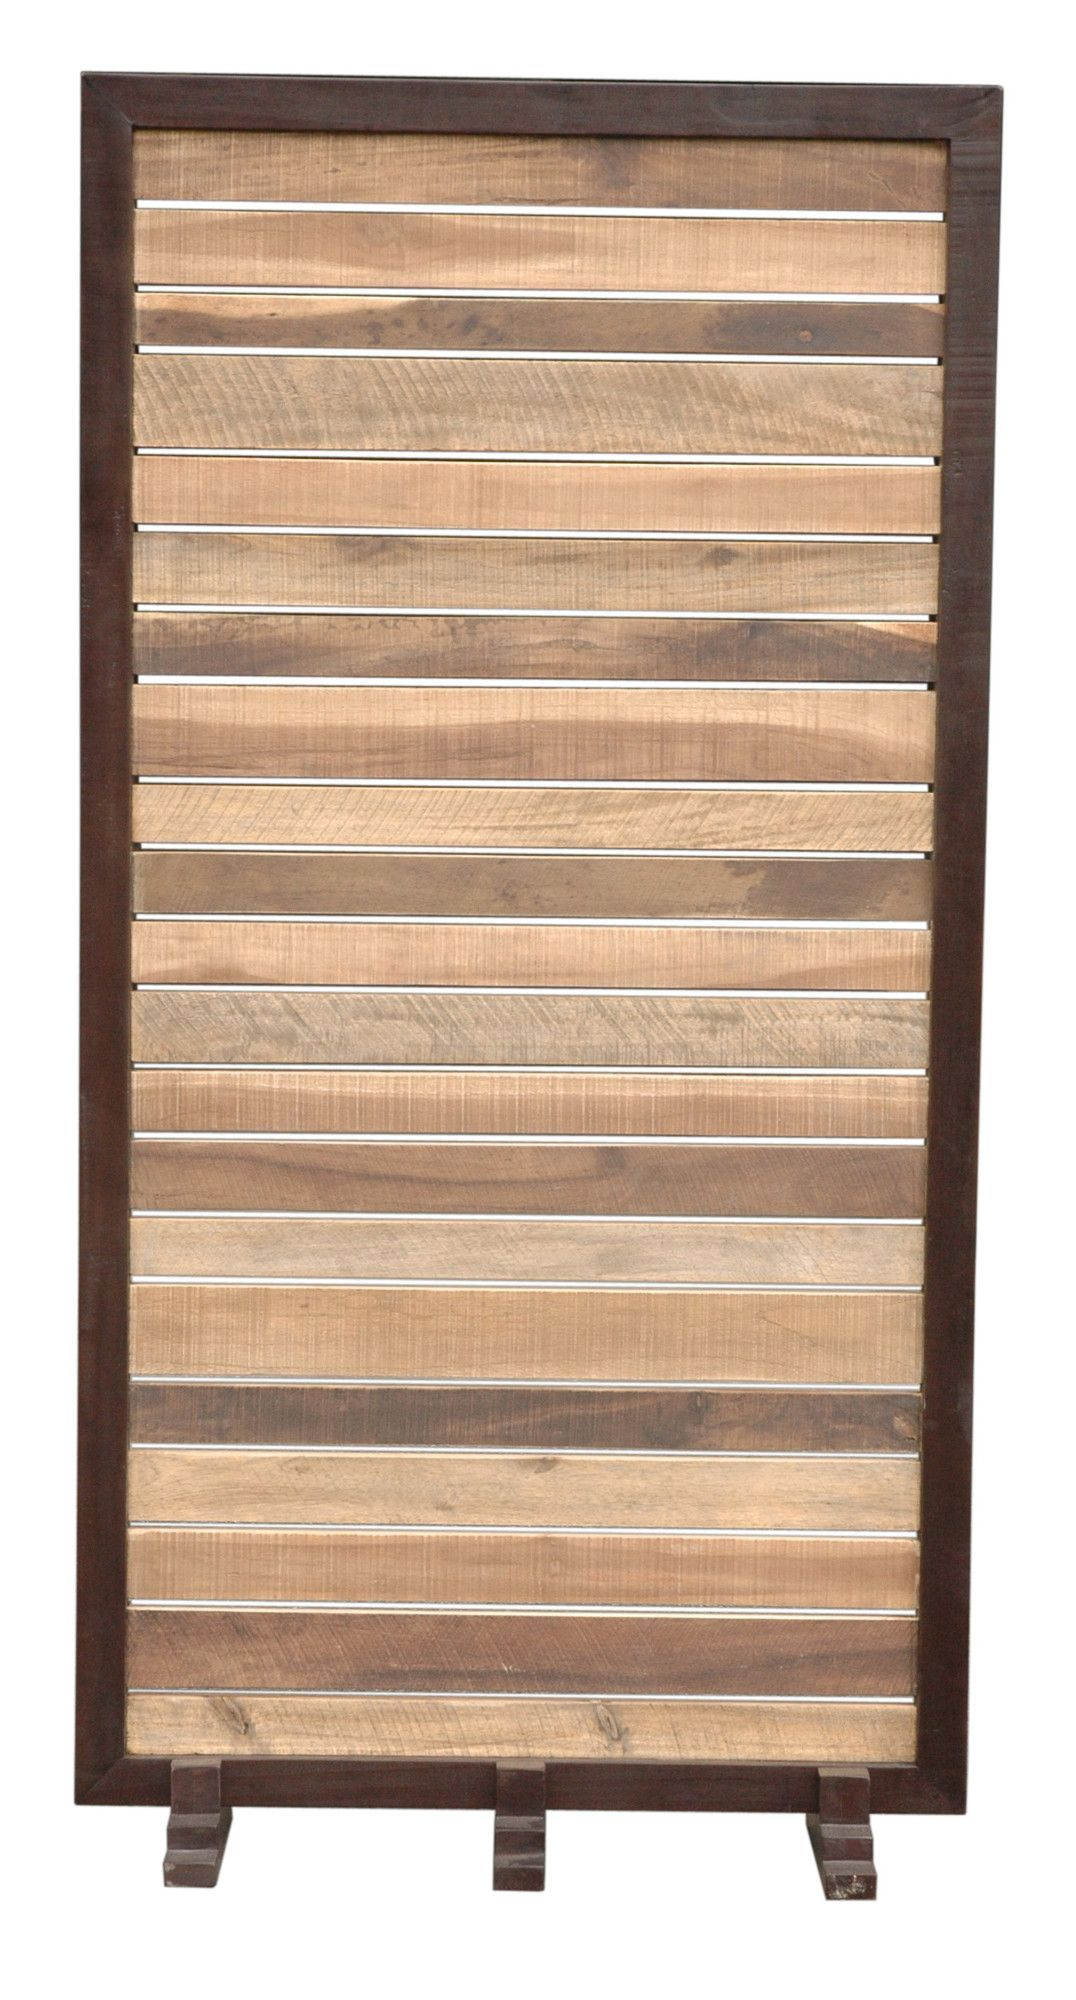 6 Ft Tall Solid Frame Fabric Room Divider 4 Panels: Features: -Material: Reclaimed Teakwood. -Wood Frame